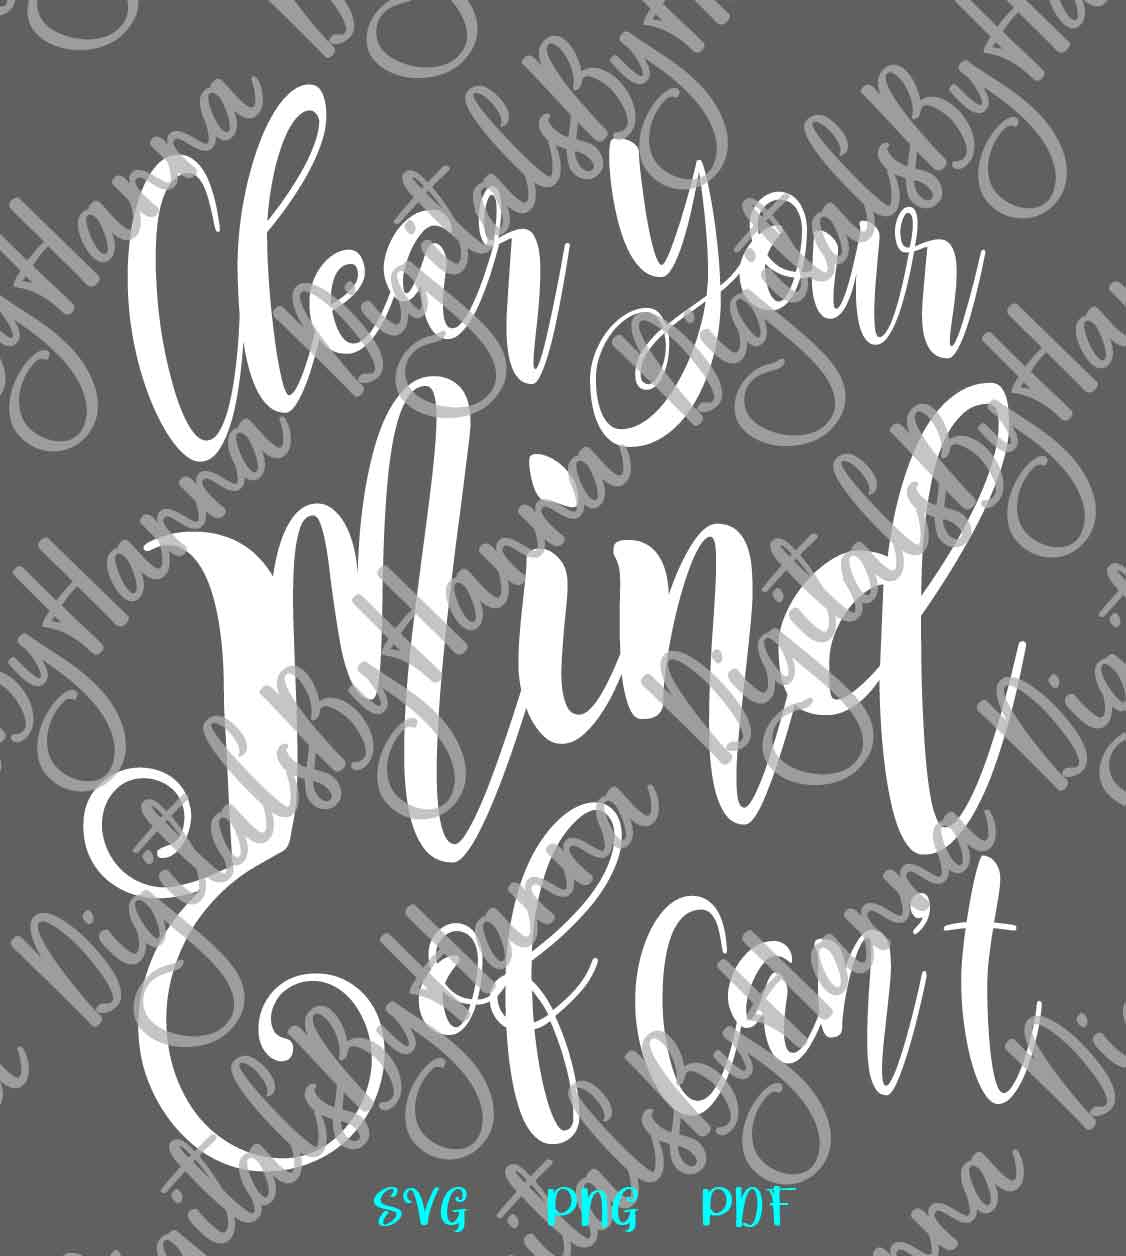 Clear Your Mind of Can't Inspirational Cut File SVG DXF PNG example image 6